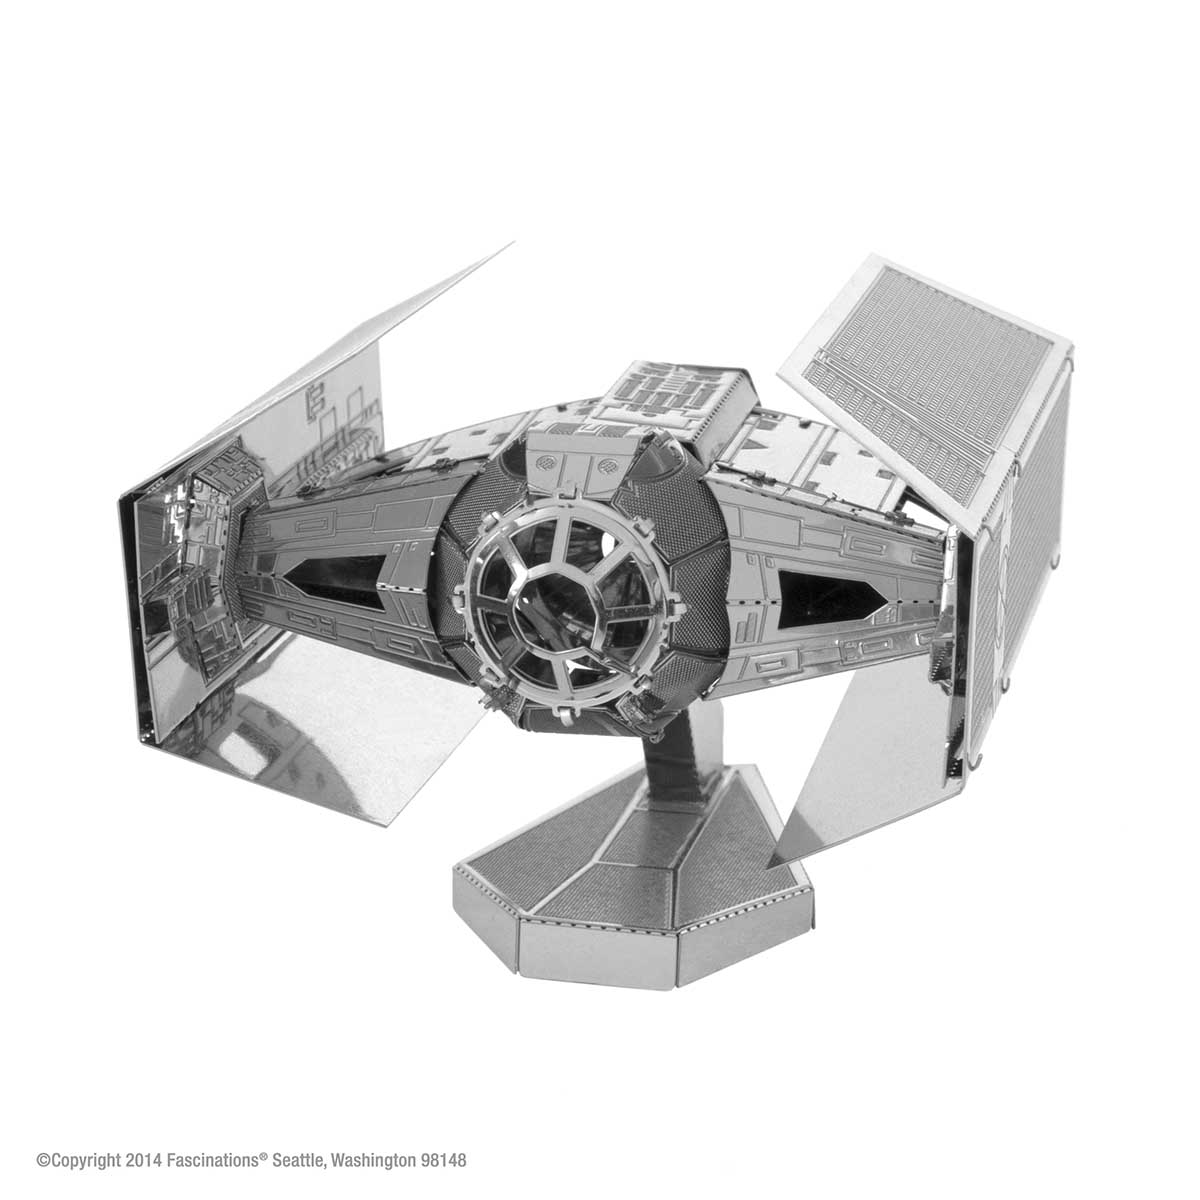 Darth Vader's TIE Fighter Space 3D Puzzle